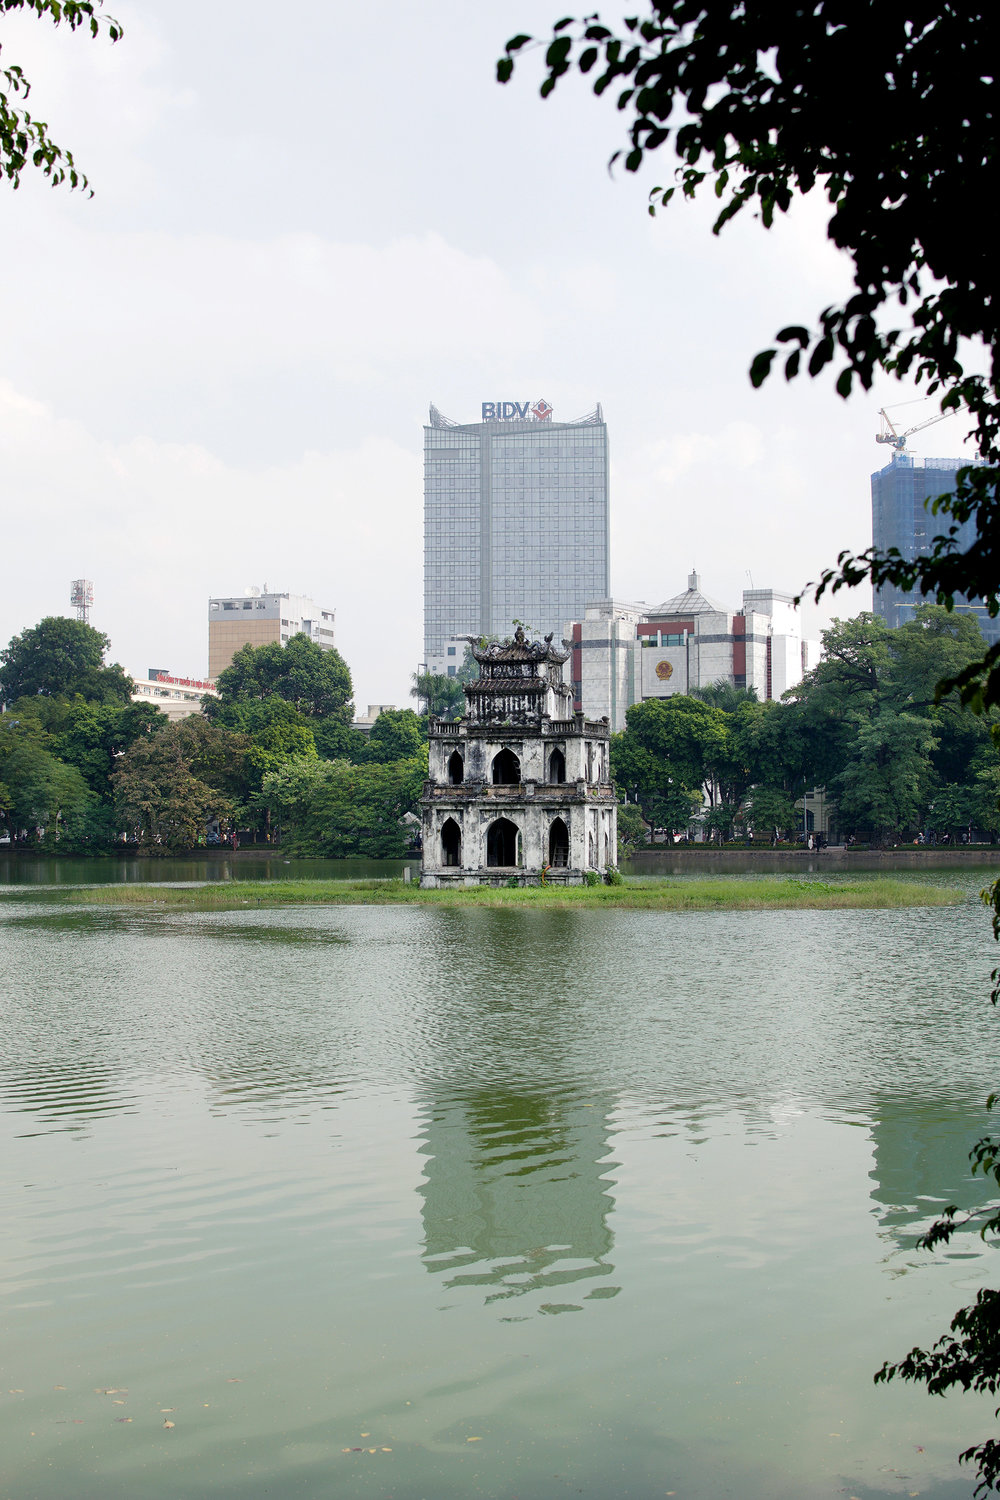 HOAN KIEM LAKE  Hoan Kiem Lake feels like a serene oasis in the bustling Old Quarter. The lake surrounds Ngoc Son Temple, which was built in the 18th century. If you go early in the morning, you can see locals doing yoga and Tai Chi!